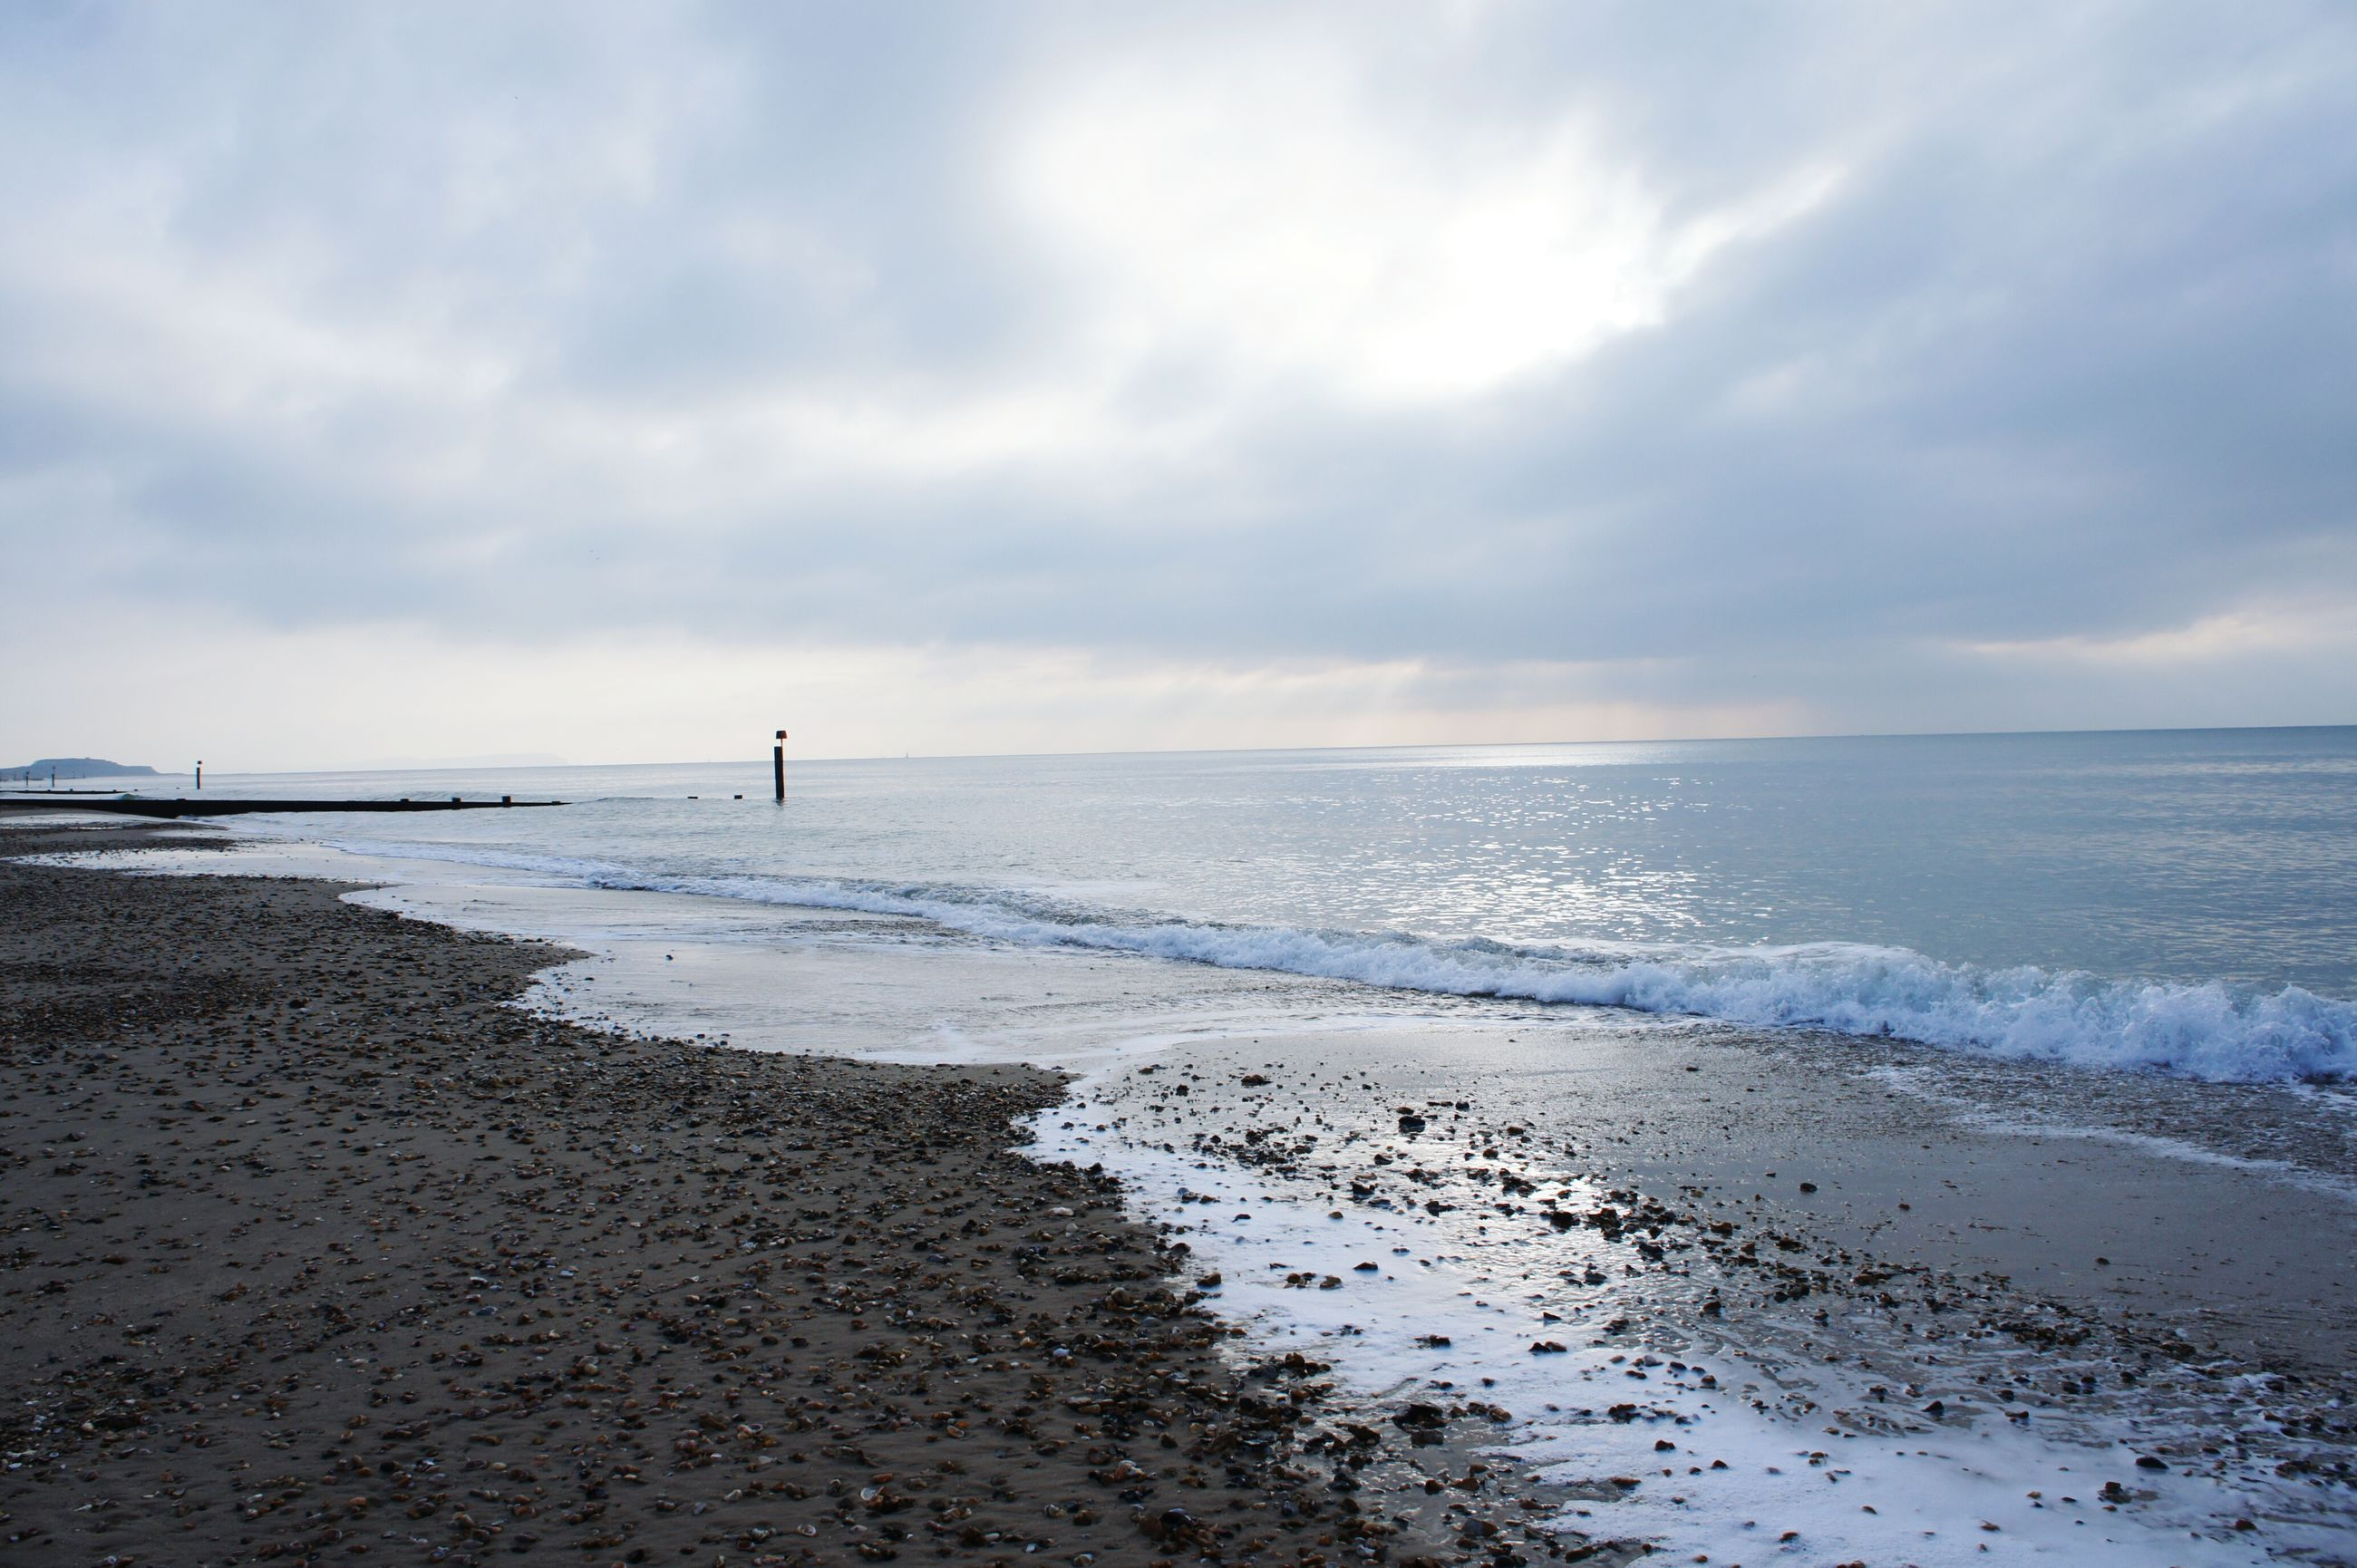 sea, horizon over water, beach, water, sky, shore, scenics, tranquil scene, tranquility, beauty in nature, cloud - sky, sand, nature, cloudy, idyllic, cloud, wave, outdoors, calm, coastline